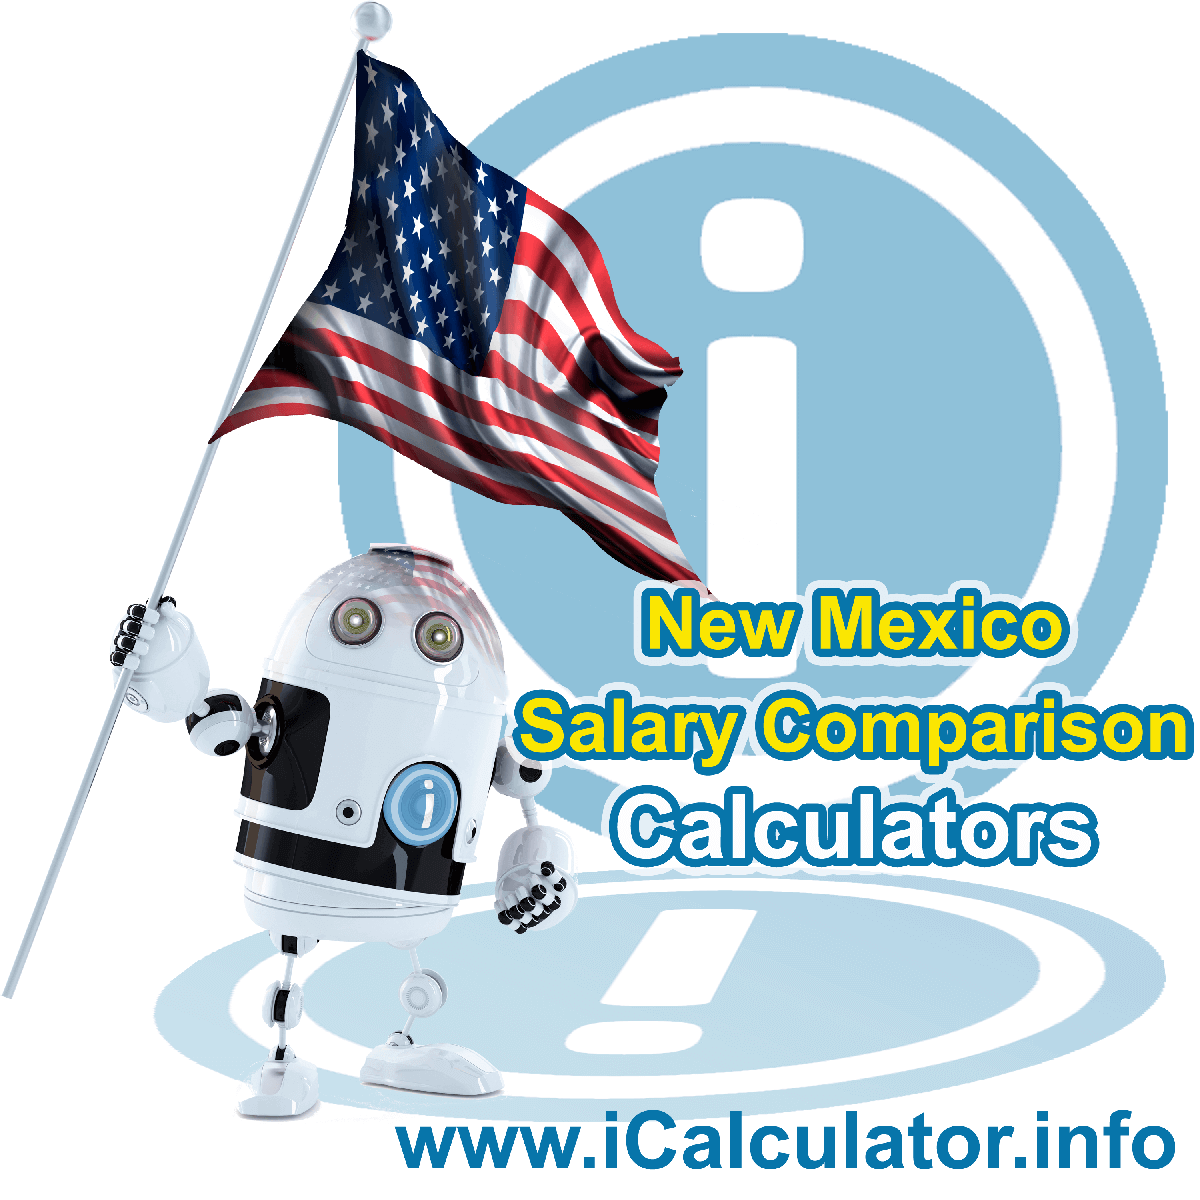 New Mexico Salary Comparison Calculator 2020 | iCalculator | The New Mexico Salary Comparison Calculator allows you to quickly calculate and compare upto 6 salaries in New Mexico or between other states for the 2020 tax year and historical tax years. Its an excellent tool for jobseekers, pay raise comparison and comparison of salaries between different US States